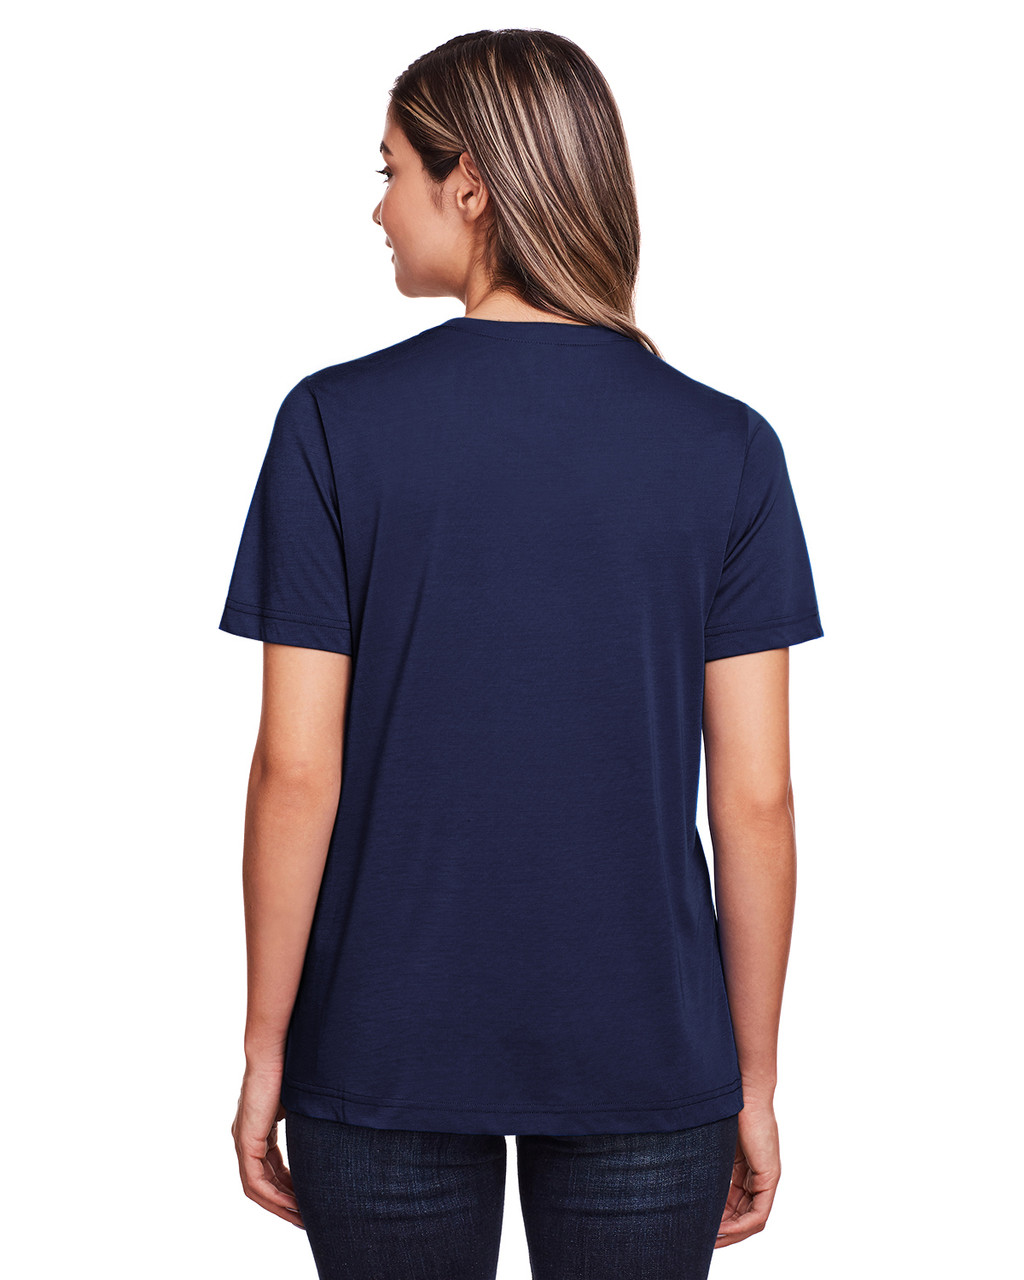 Classic Navy - Back, CE111W Core 365 Ladies' Fusion ChromaSoft™ Performance T-Shirt | BlankClothing.ca